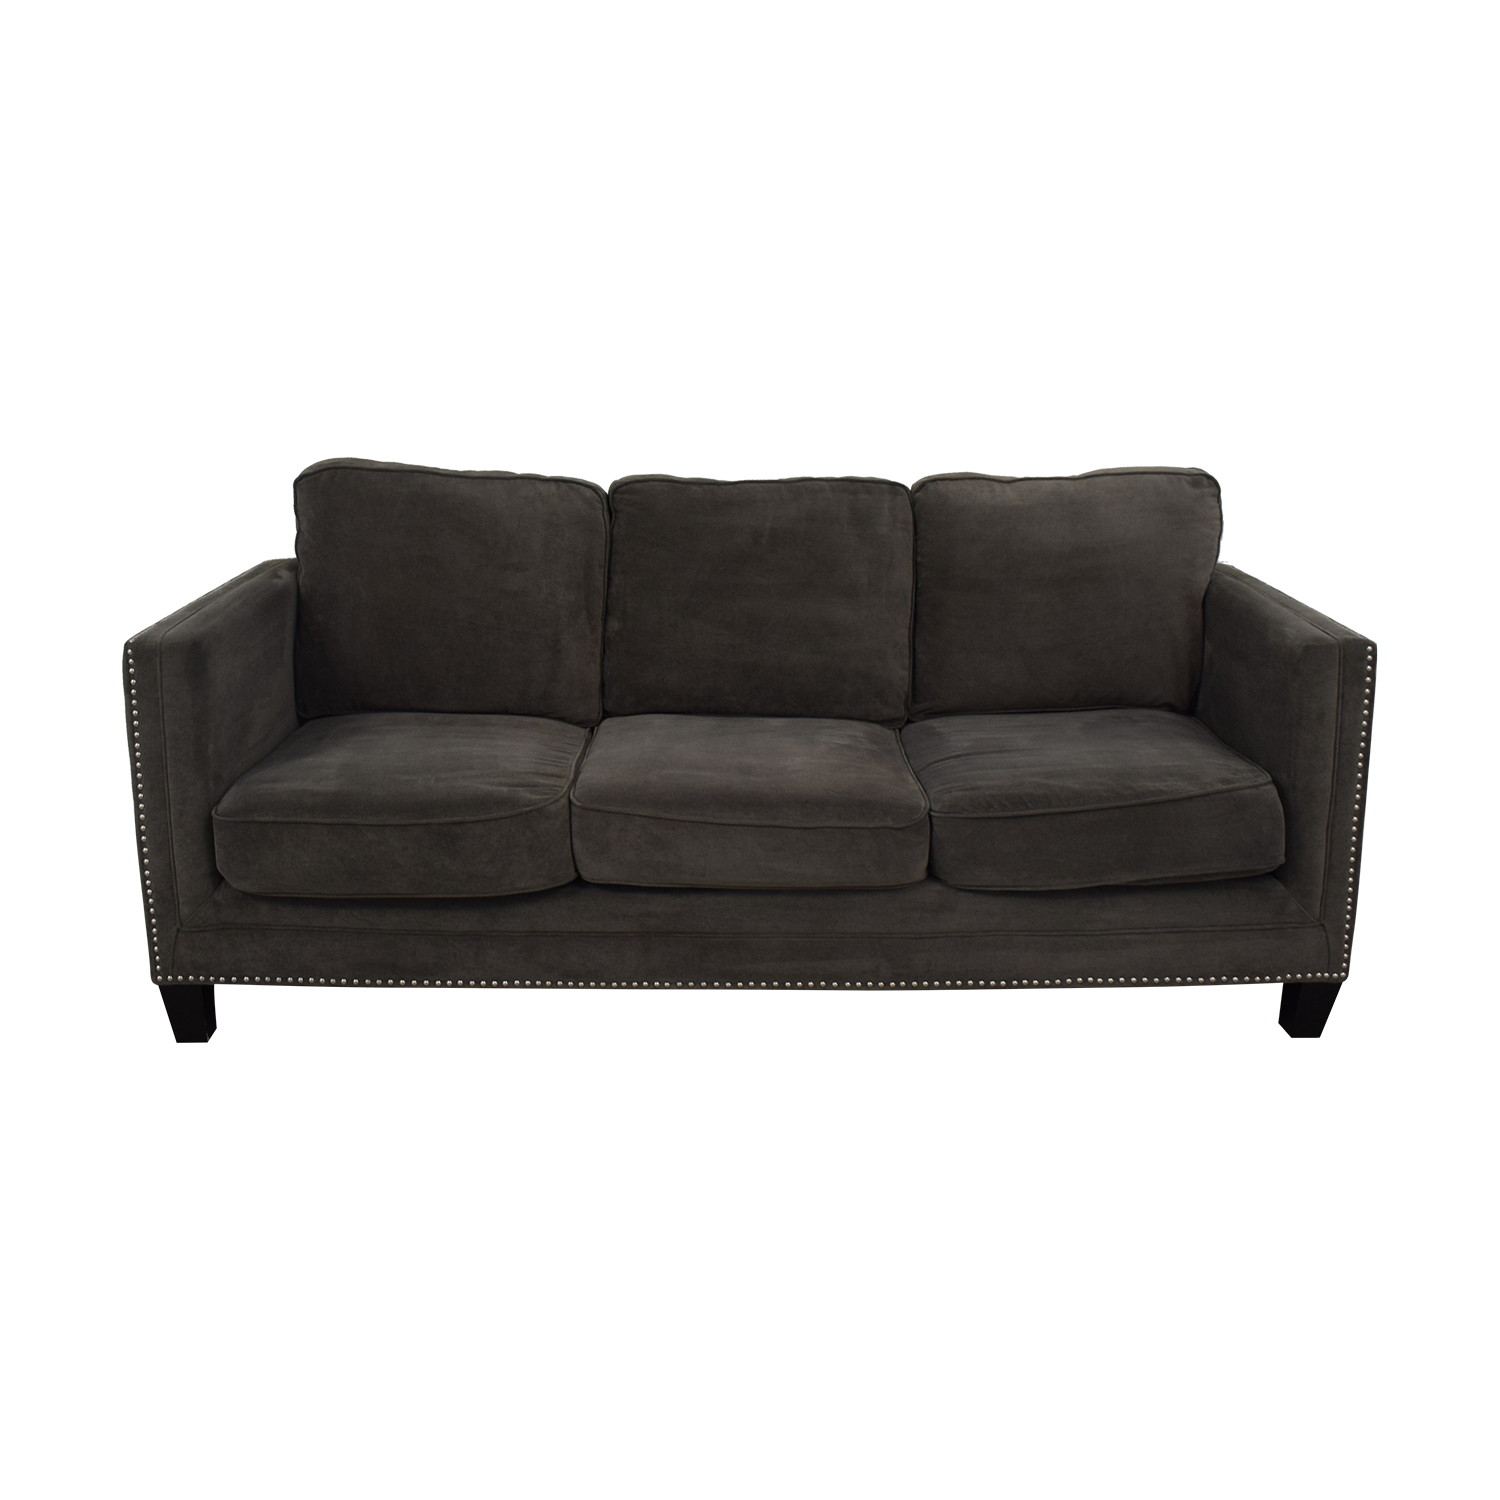 buy Emerald Home Carlton Sofa Emerald Home Furnishings Classic Sofas